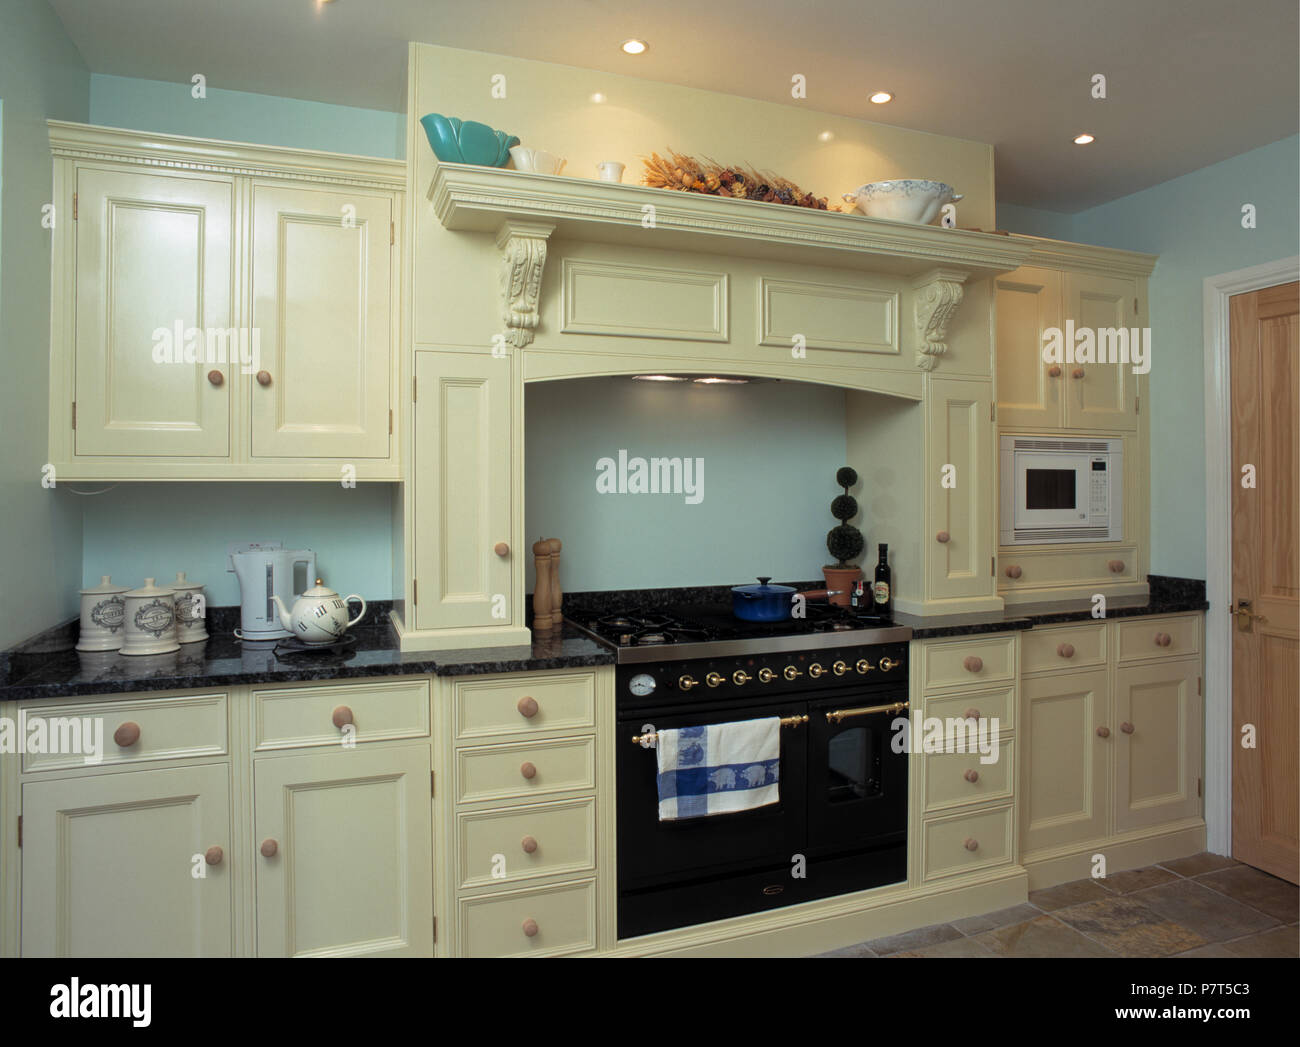 Contemporary Pastel Turquoise Kitchen With Range Oven And Cream Fitted  Cupboards With Black Granite Worktops